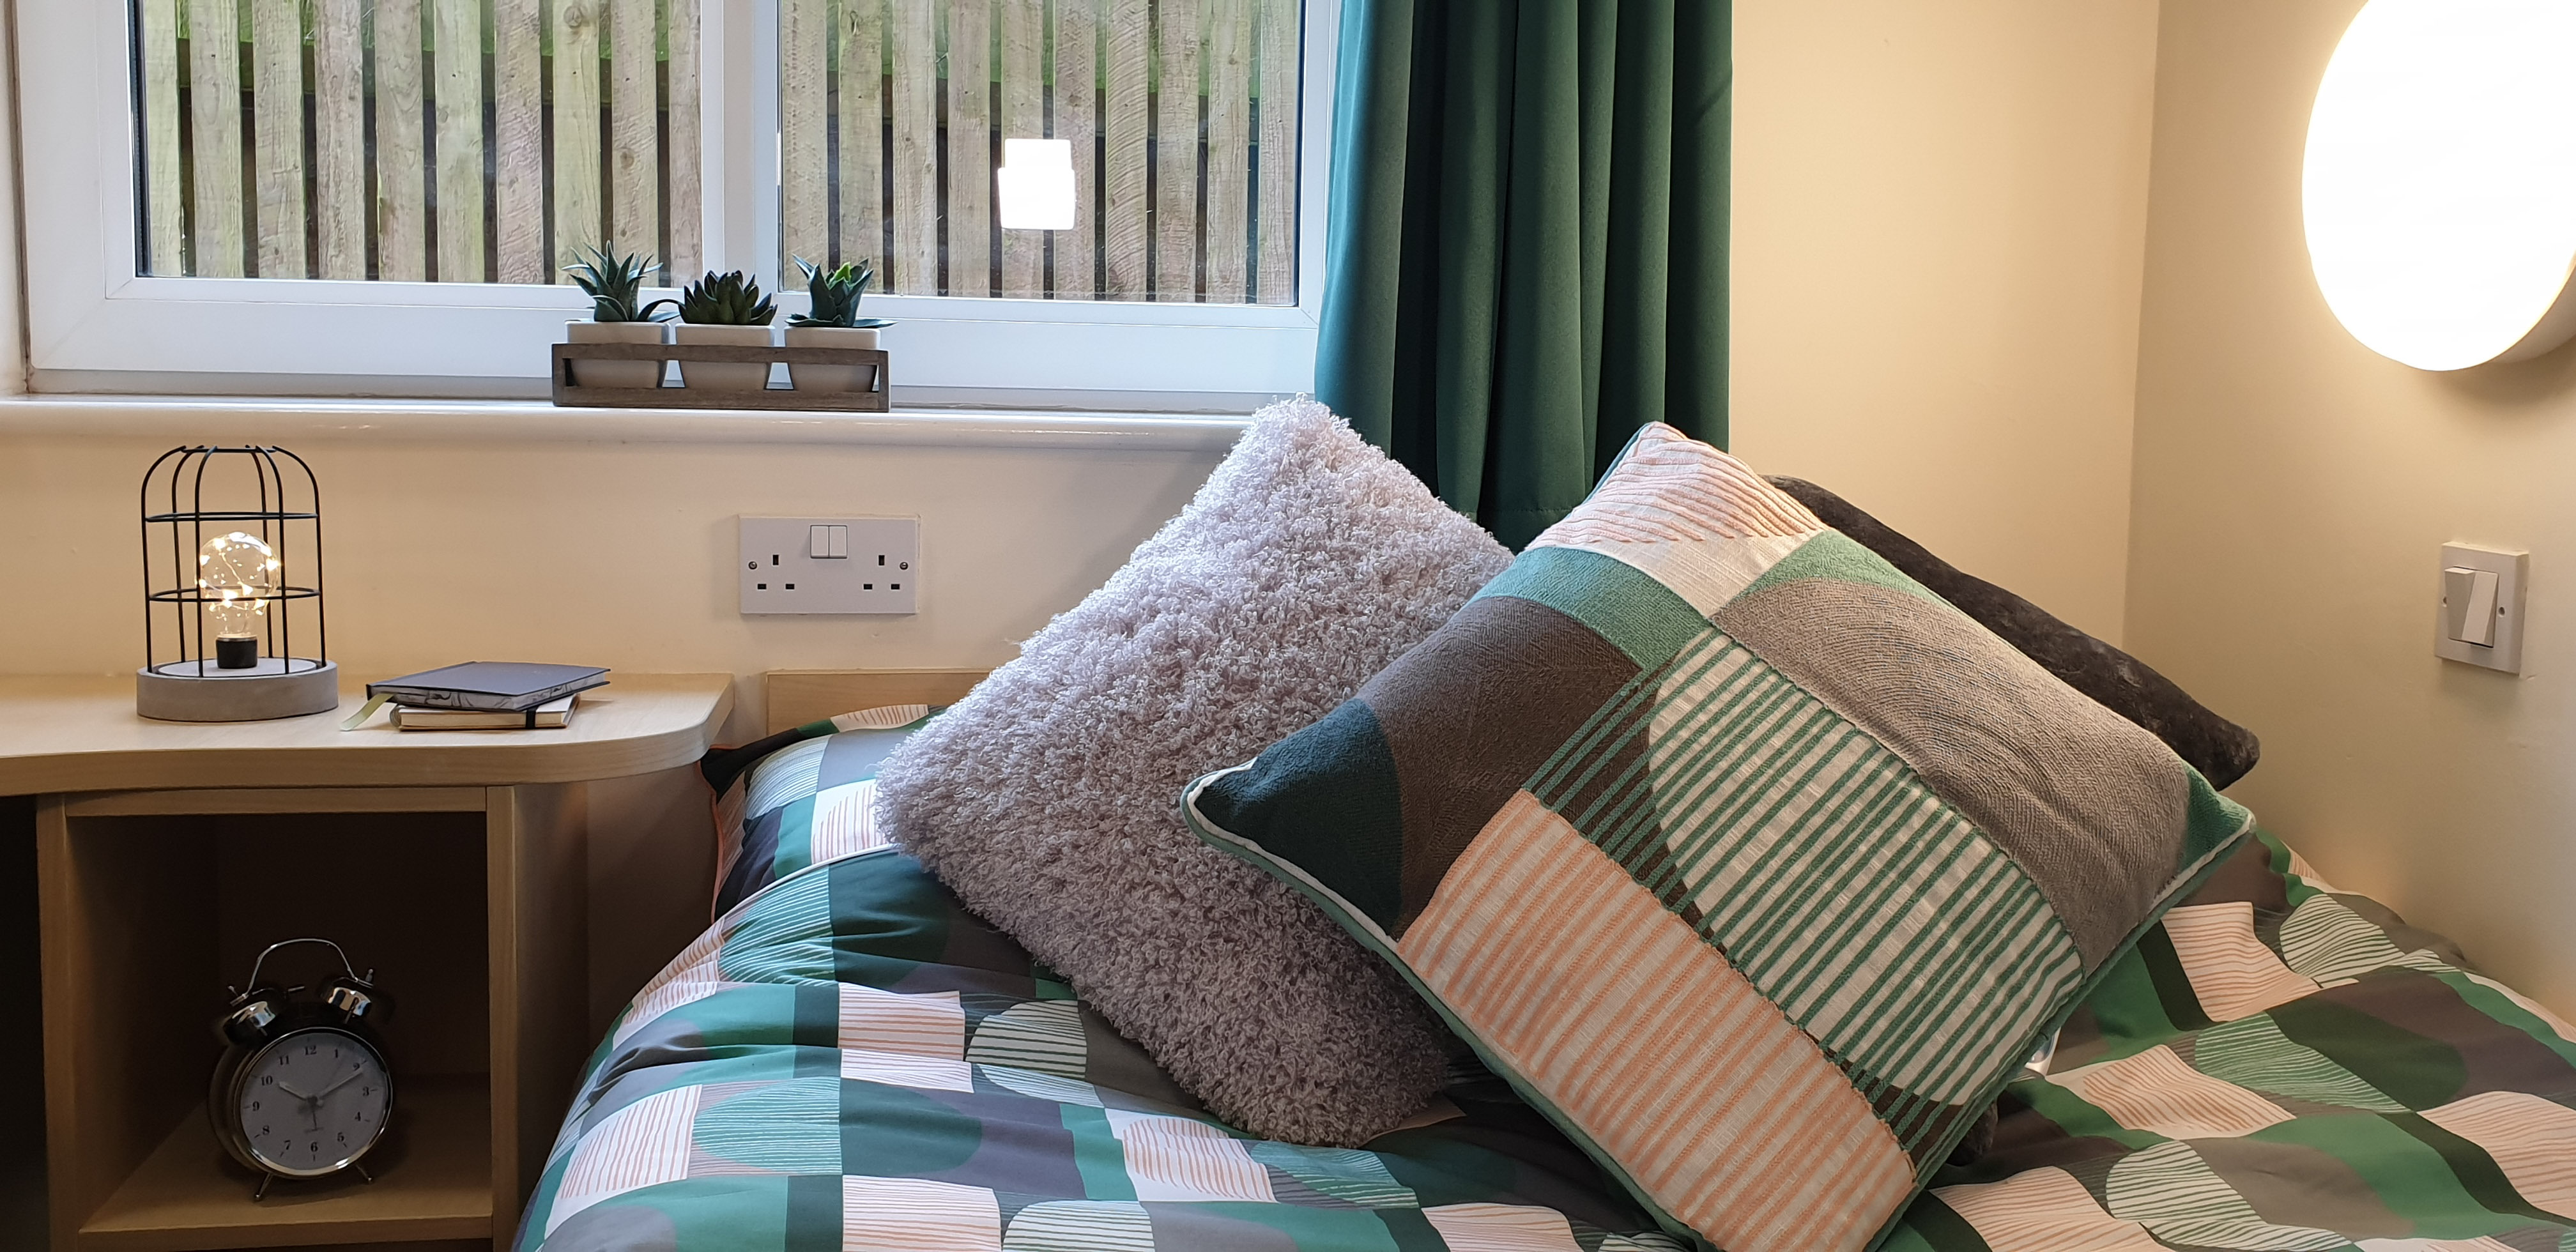 En-suite at The Cube Student Accommodation in Loughborough